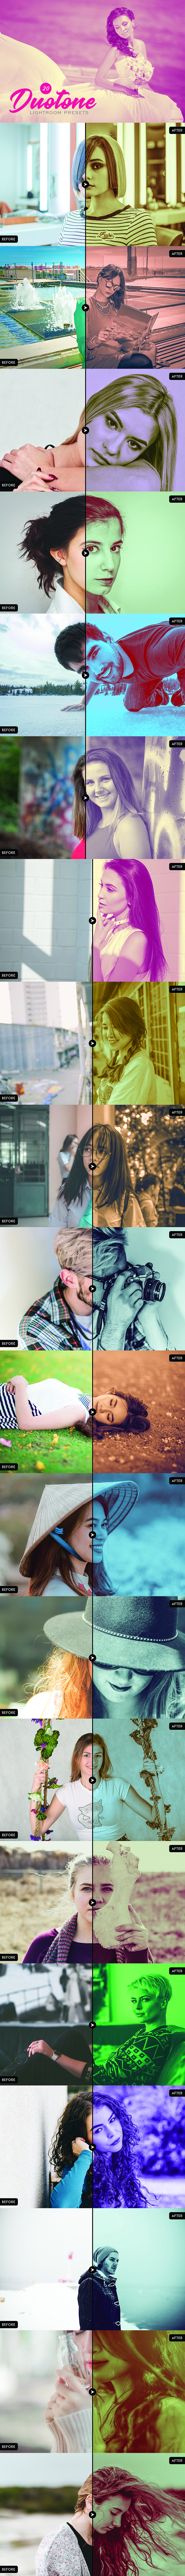 GraphicRiver 20 Duotone Lightroom Presets 20694342